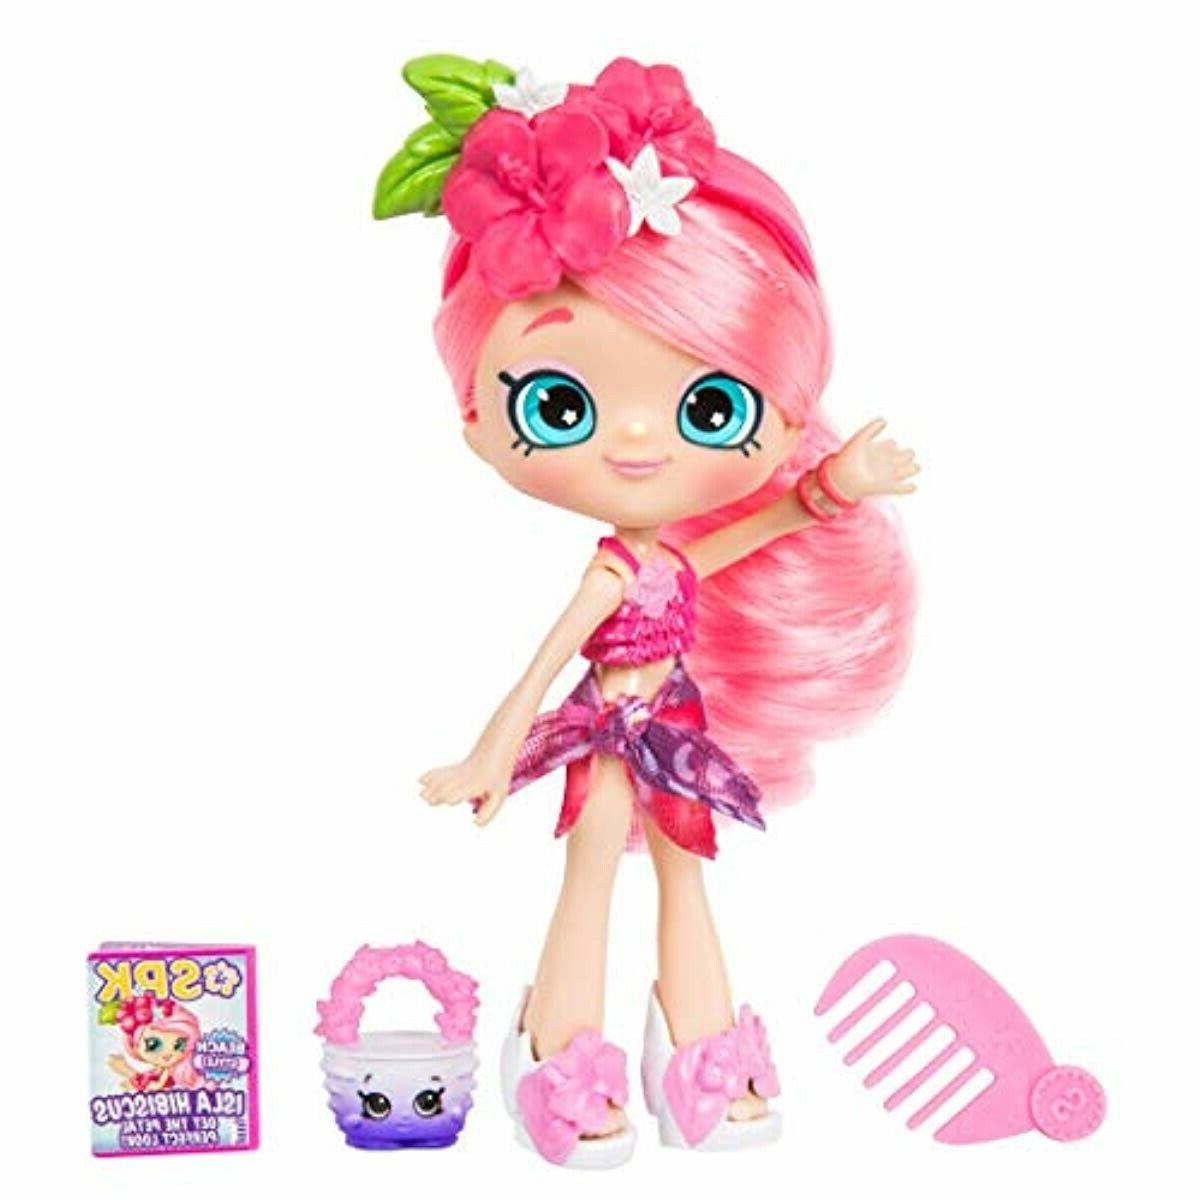 5 shoppie doll with matching shopkin accessories